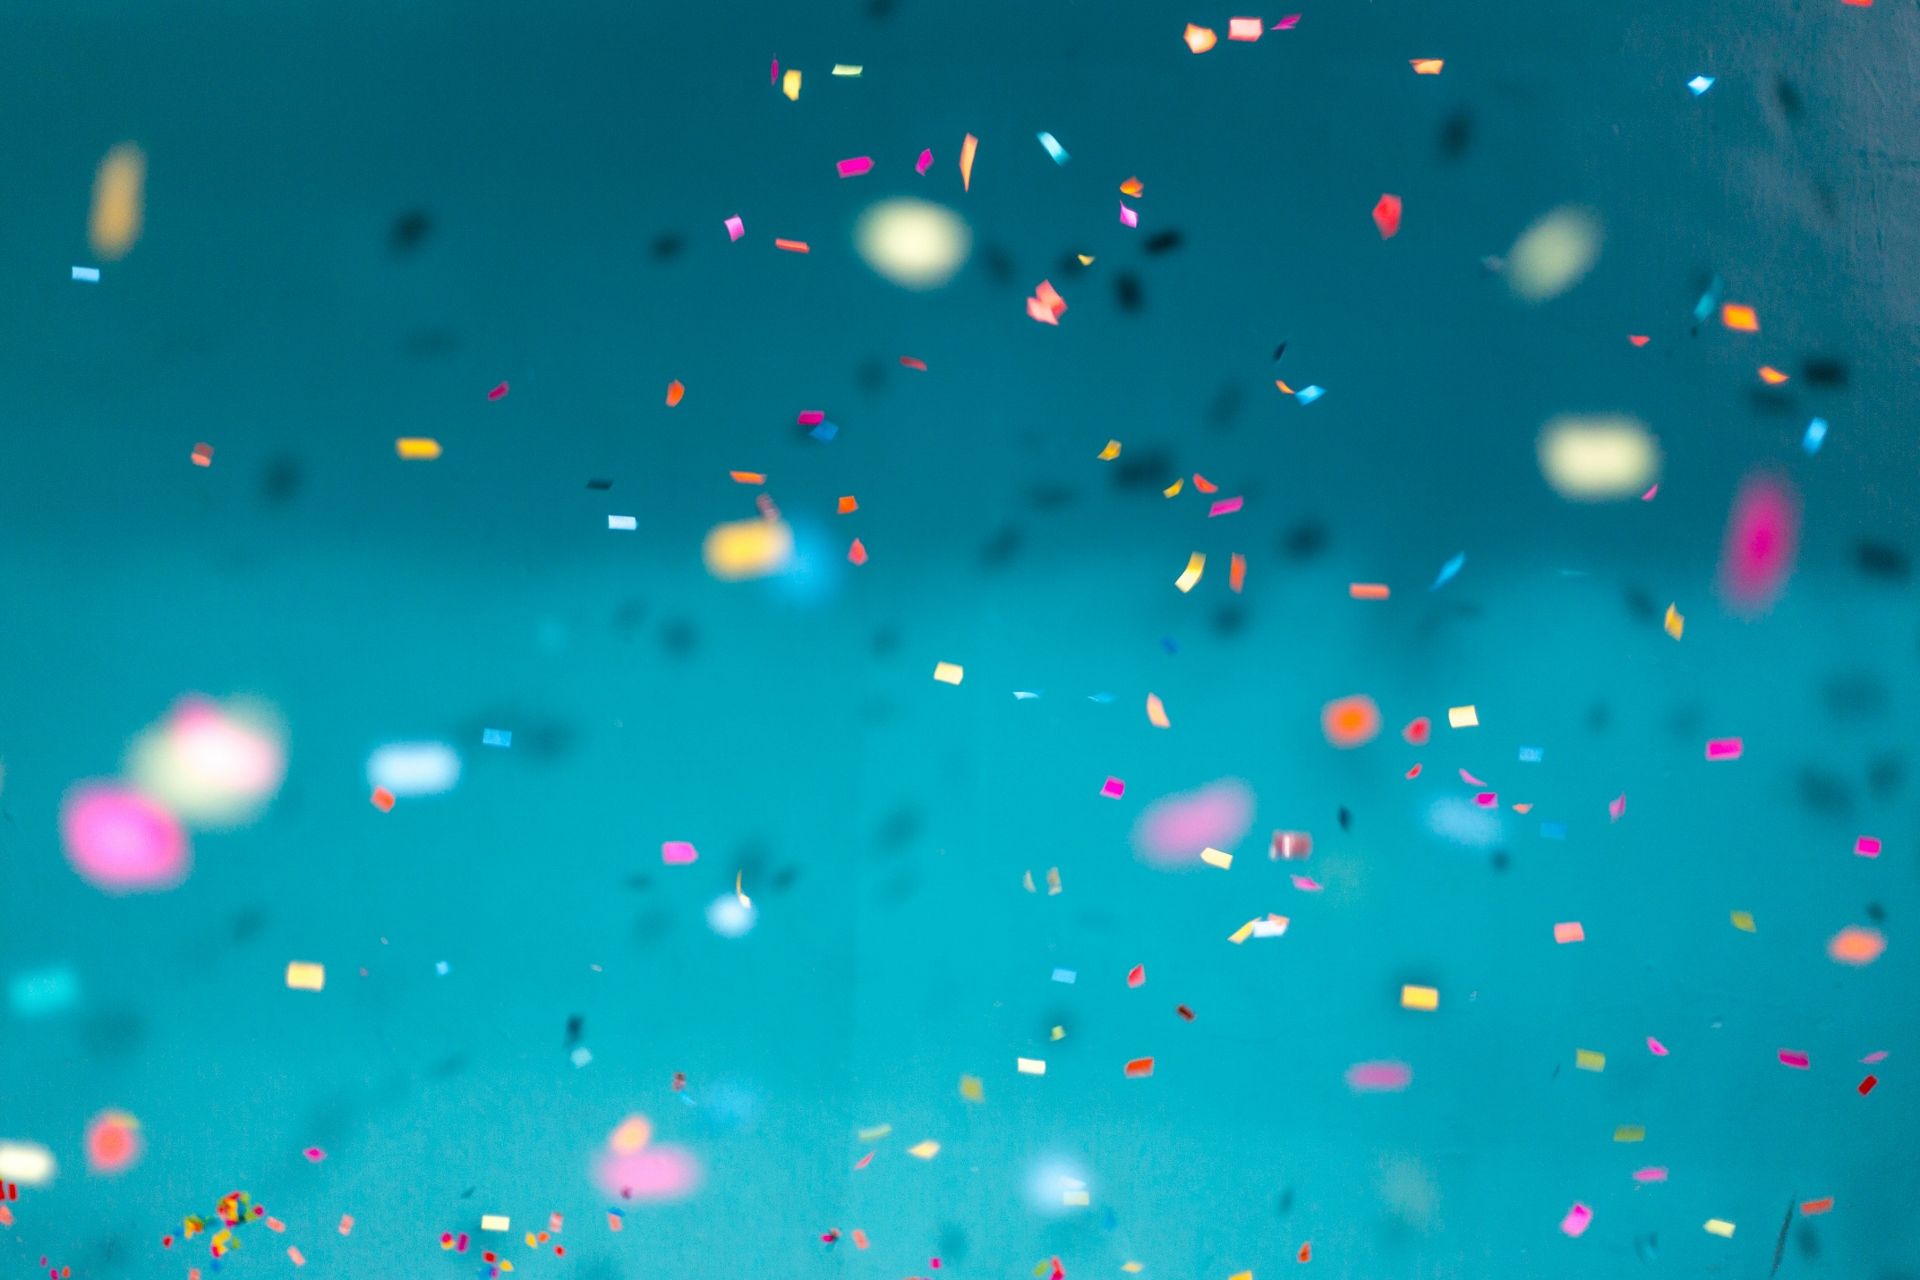 confetti, birthday party, wedding, corporate event, party, dj,